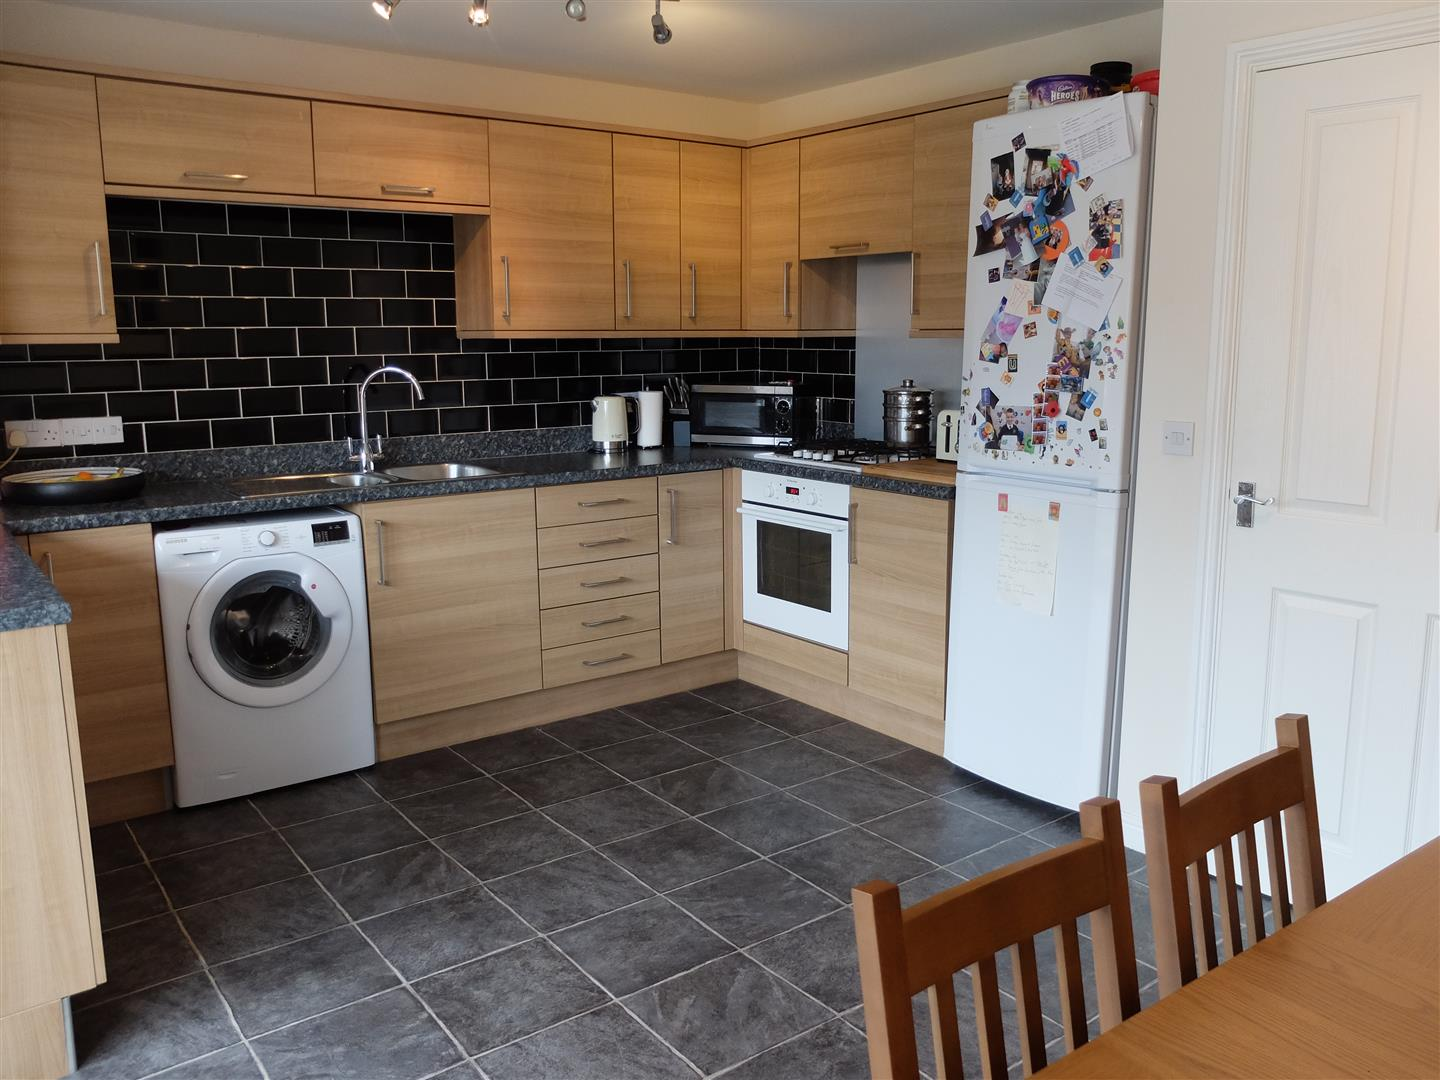 4 Bedrooms House - Townhouse On Sale 16 Tramside Way Carlisle